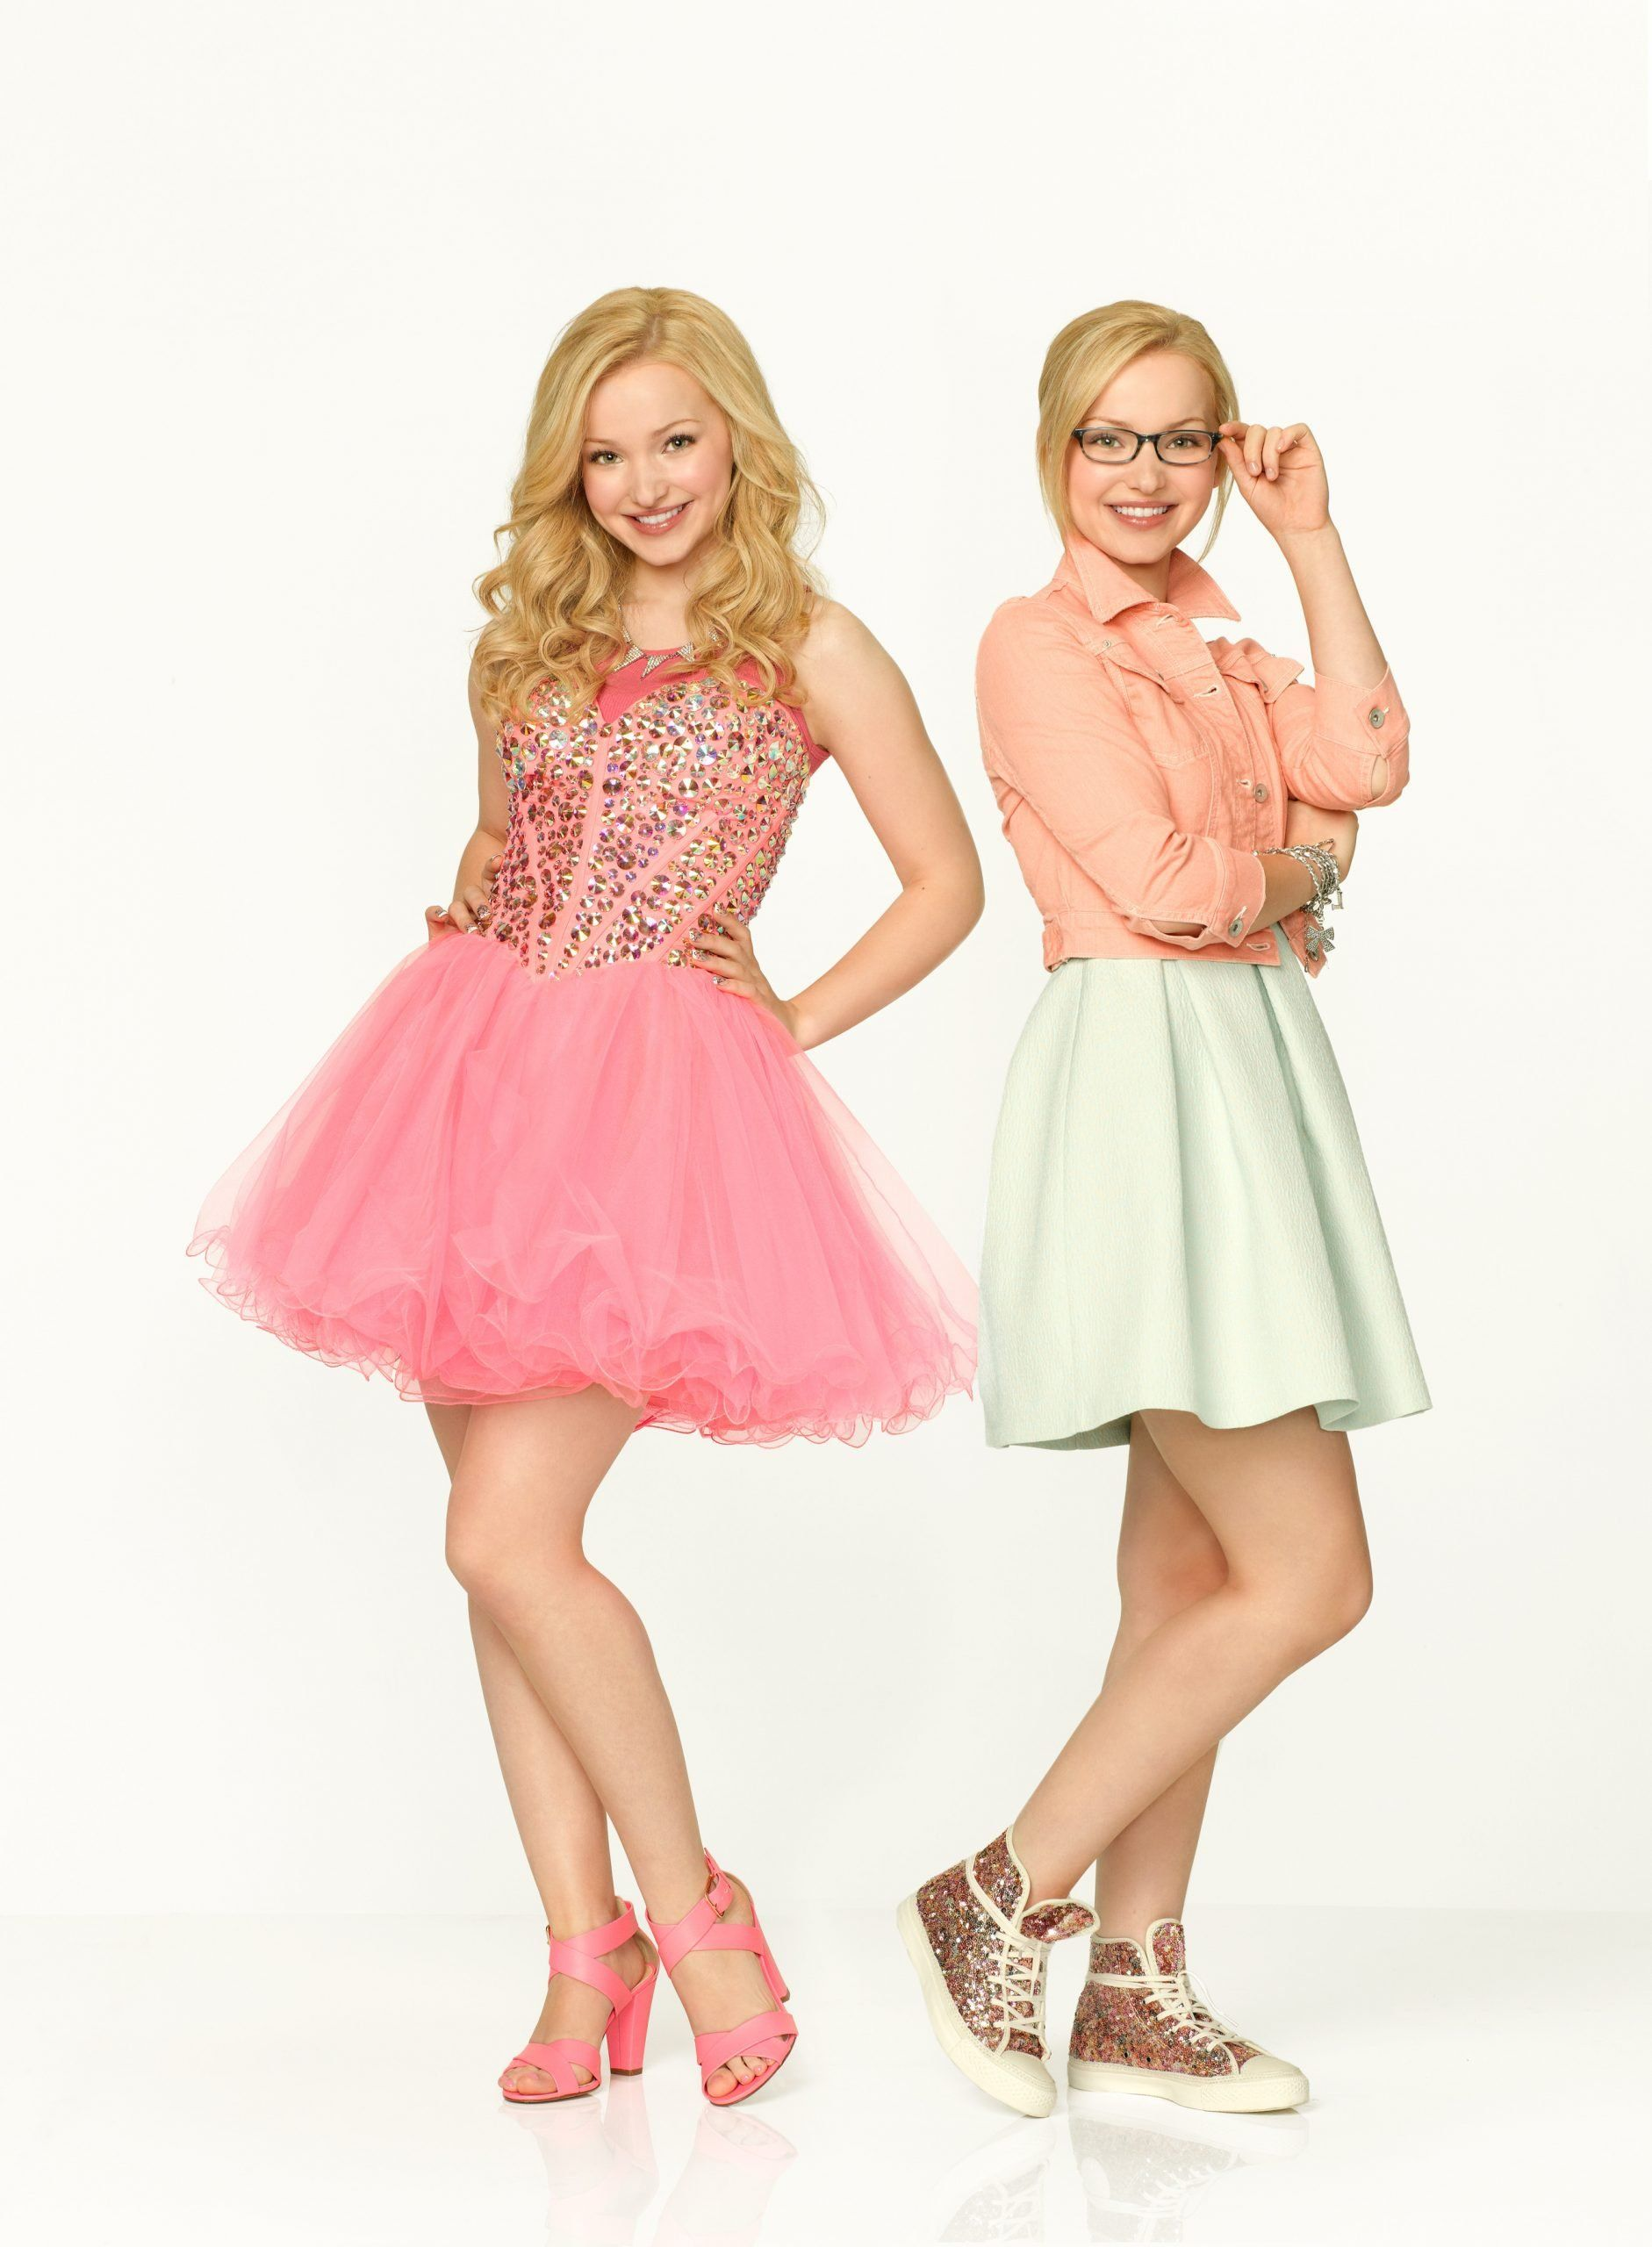 Liv And Maddie Coloring Pages Dove Cameron Edit By Destinee I Don T Even Know If I M In 2020 Liv And Maddie Dove Cameron Girl Meets World